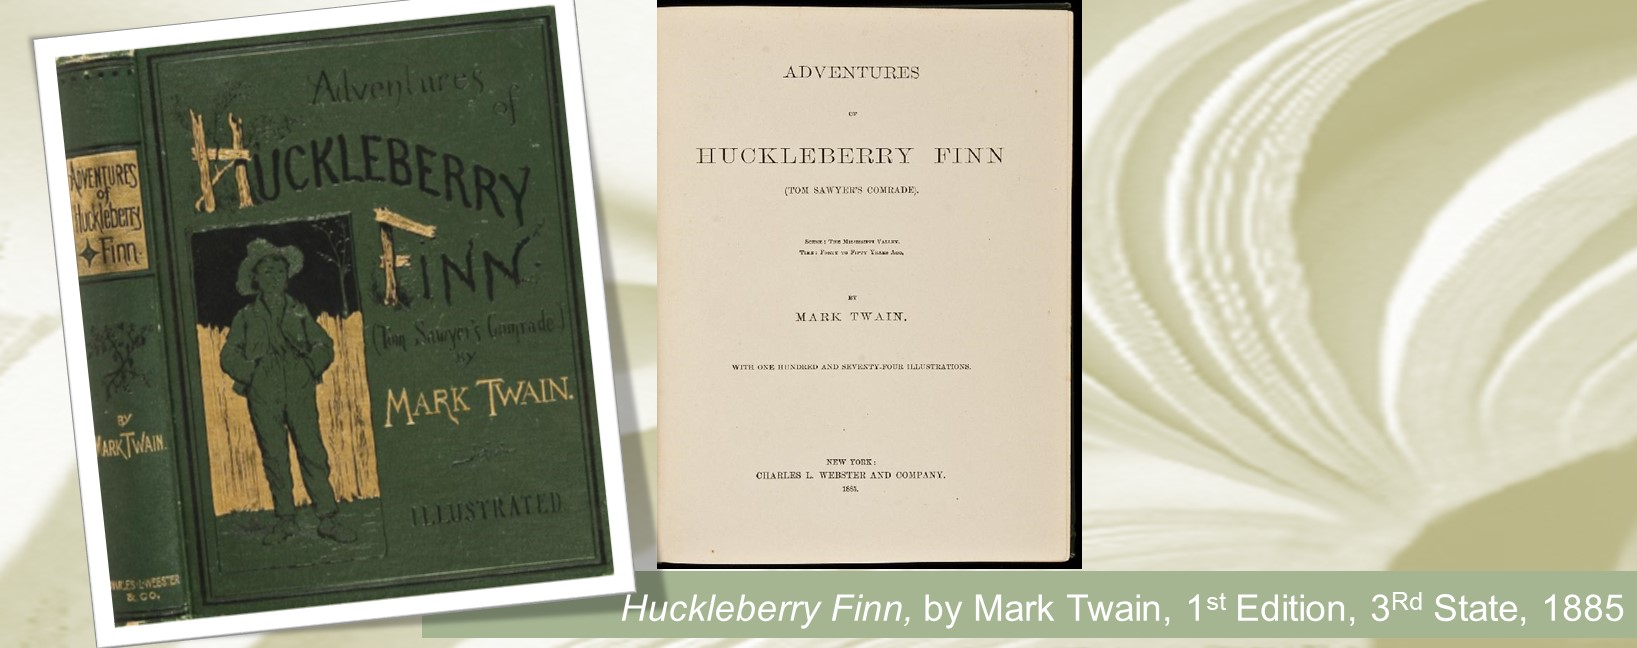 huckleberry finn a good role model Free essay on the role of the mississippi river in huckleberry finn available totally free at echeatcom, the largest free essay community.